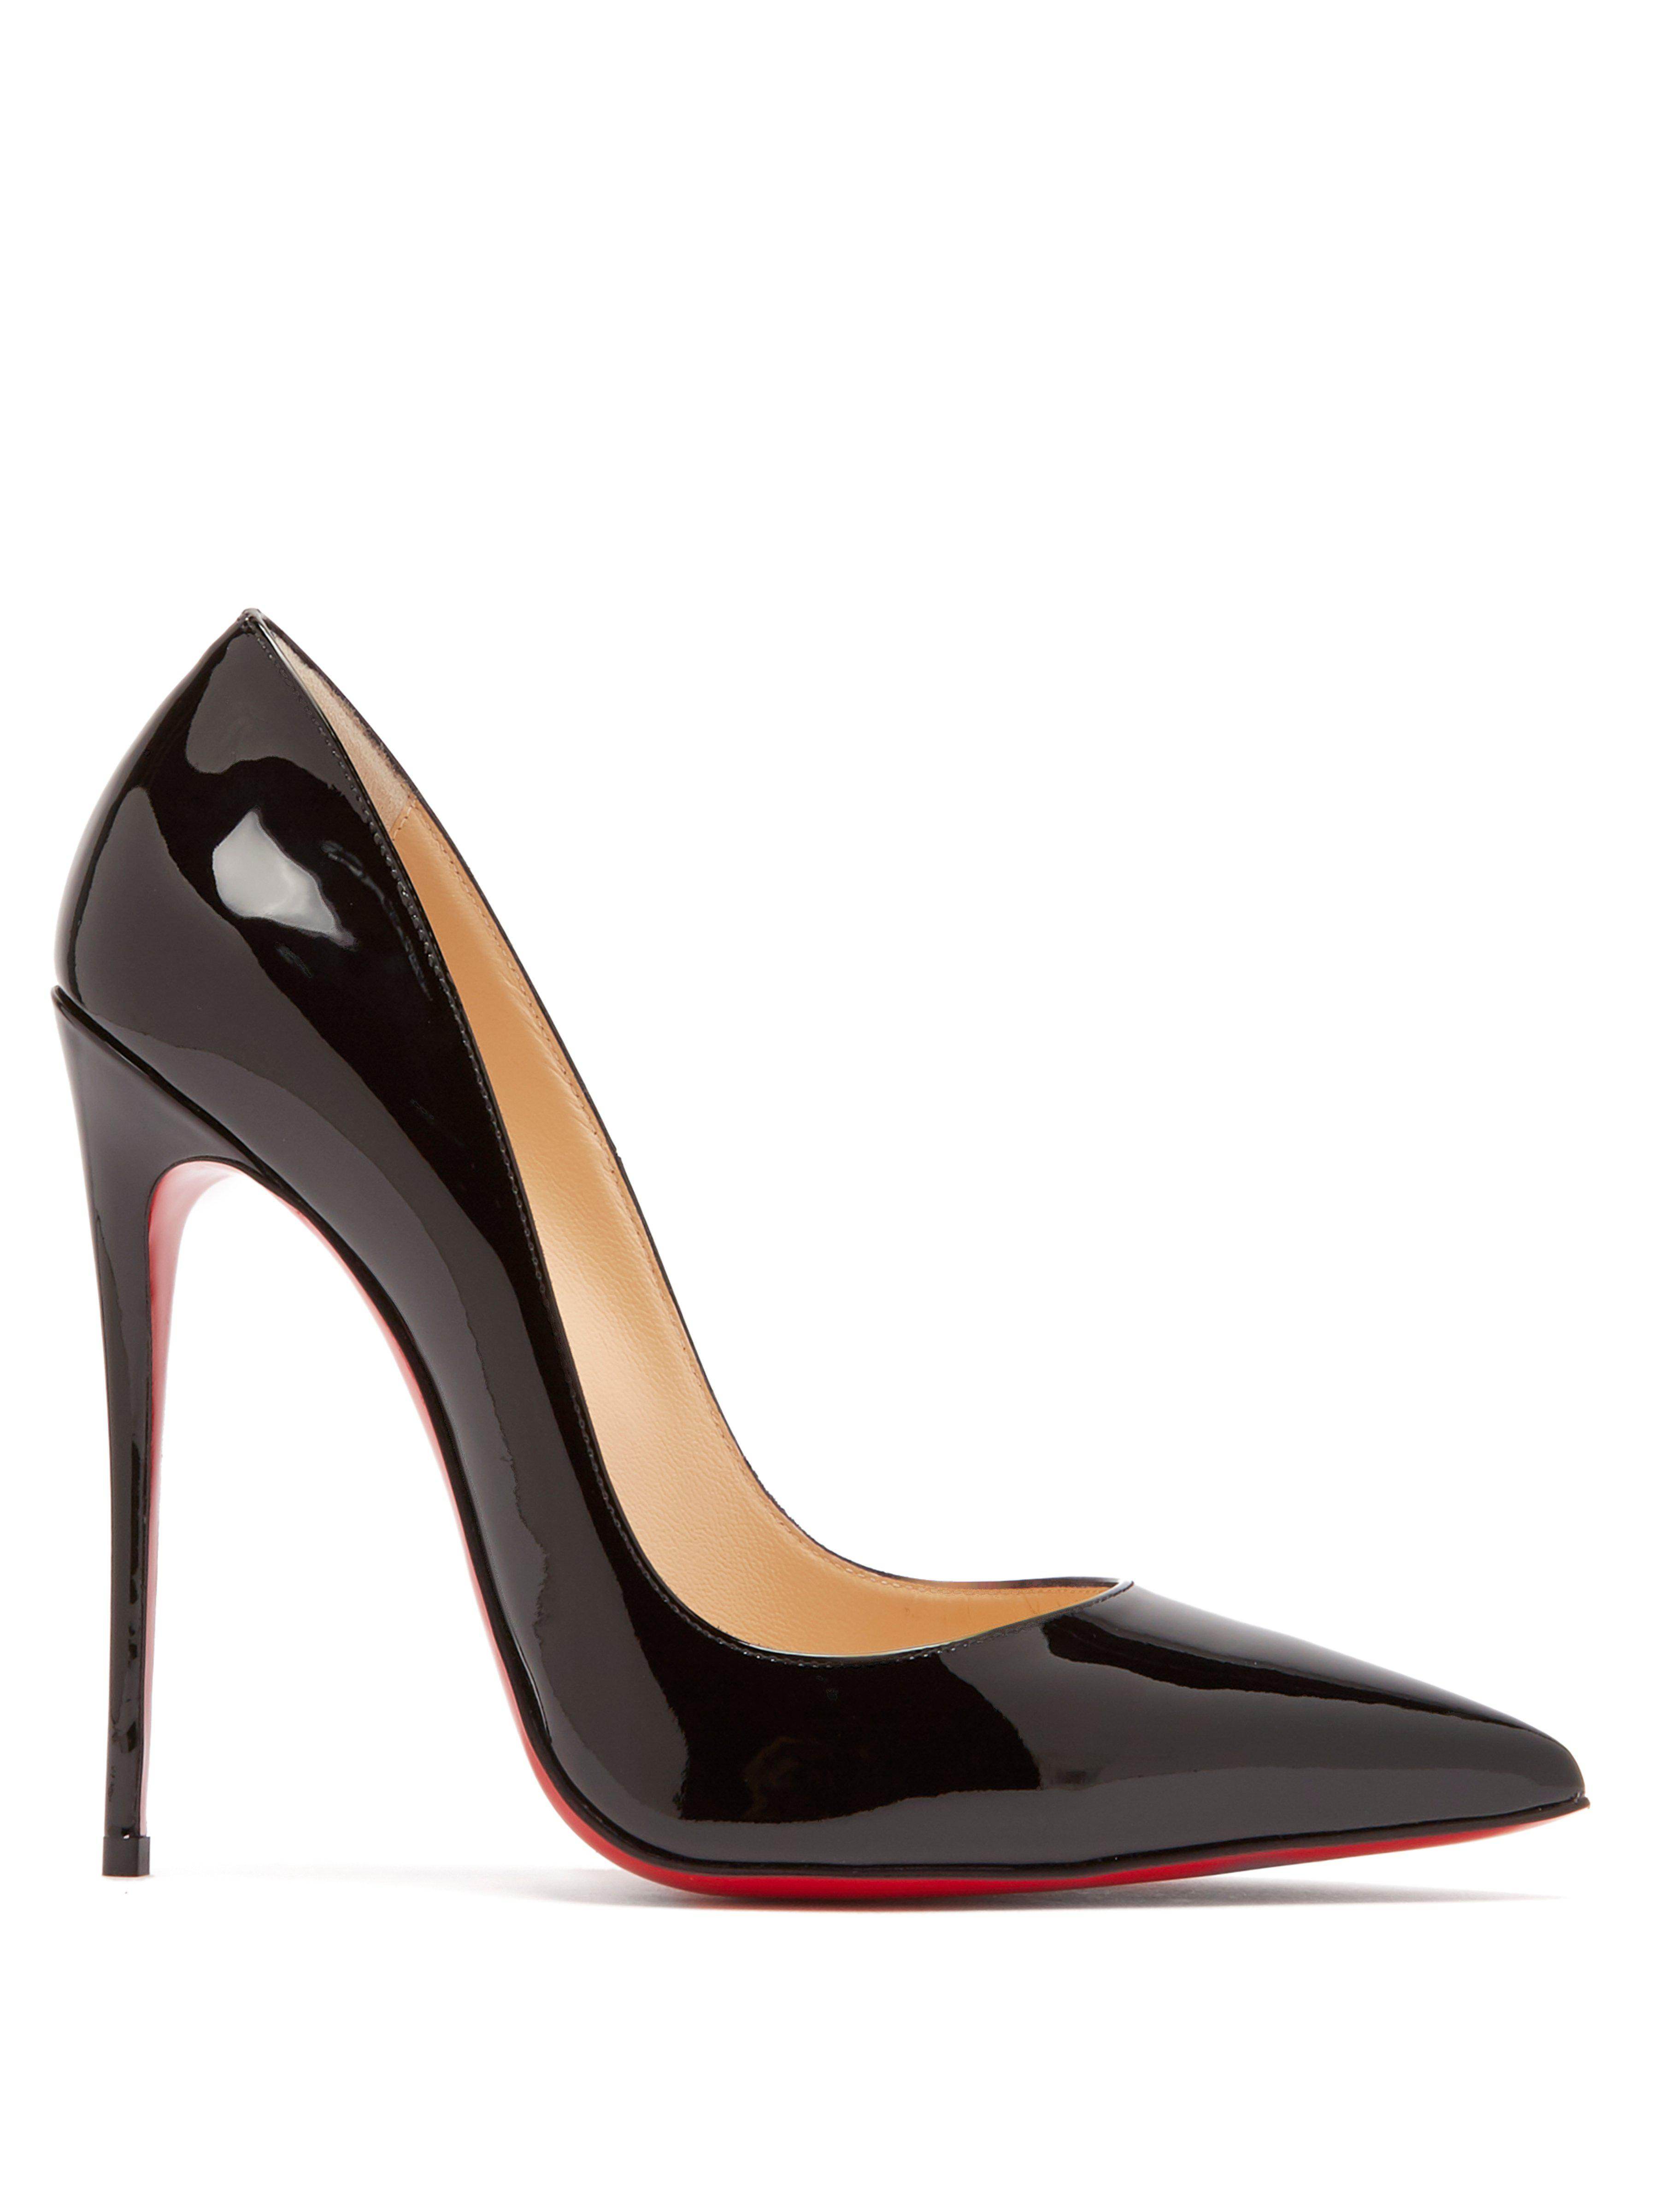 e760bae0dd38 Christian Louboutin So Kate 120 Patent Leather Pumps in Black - Save ...